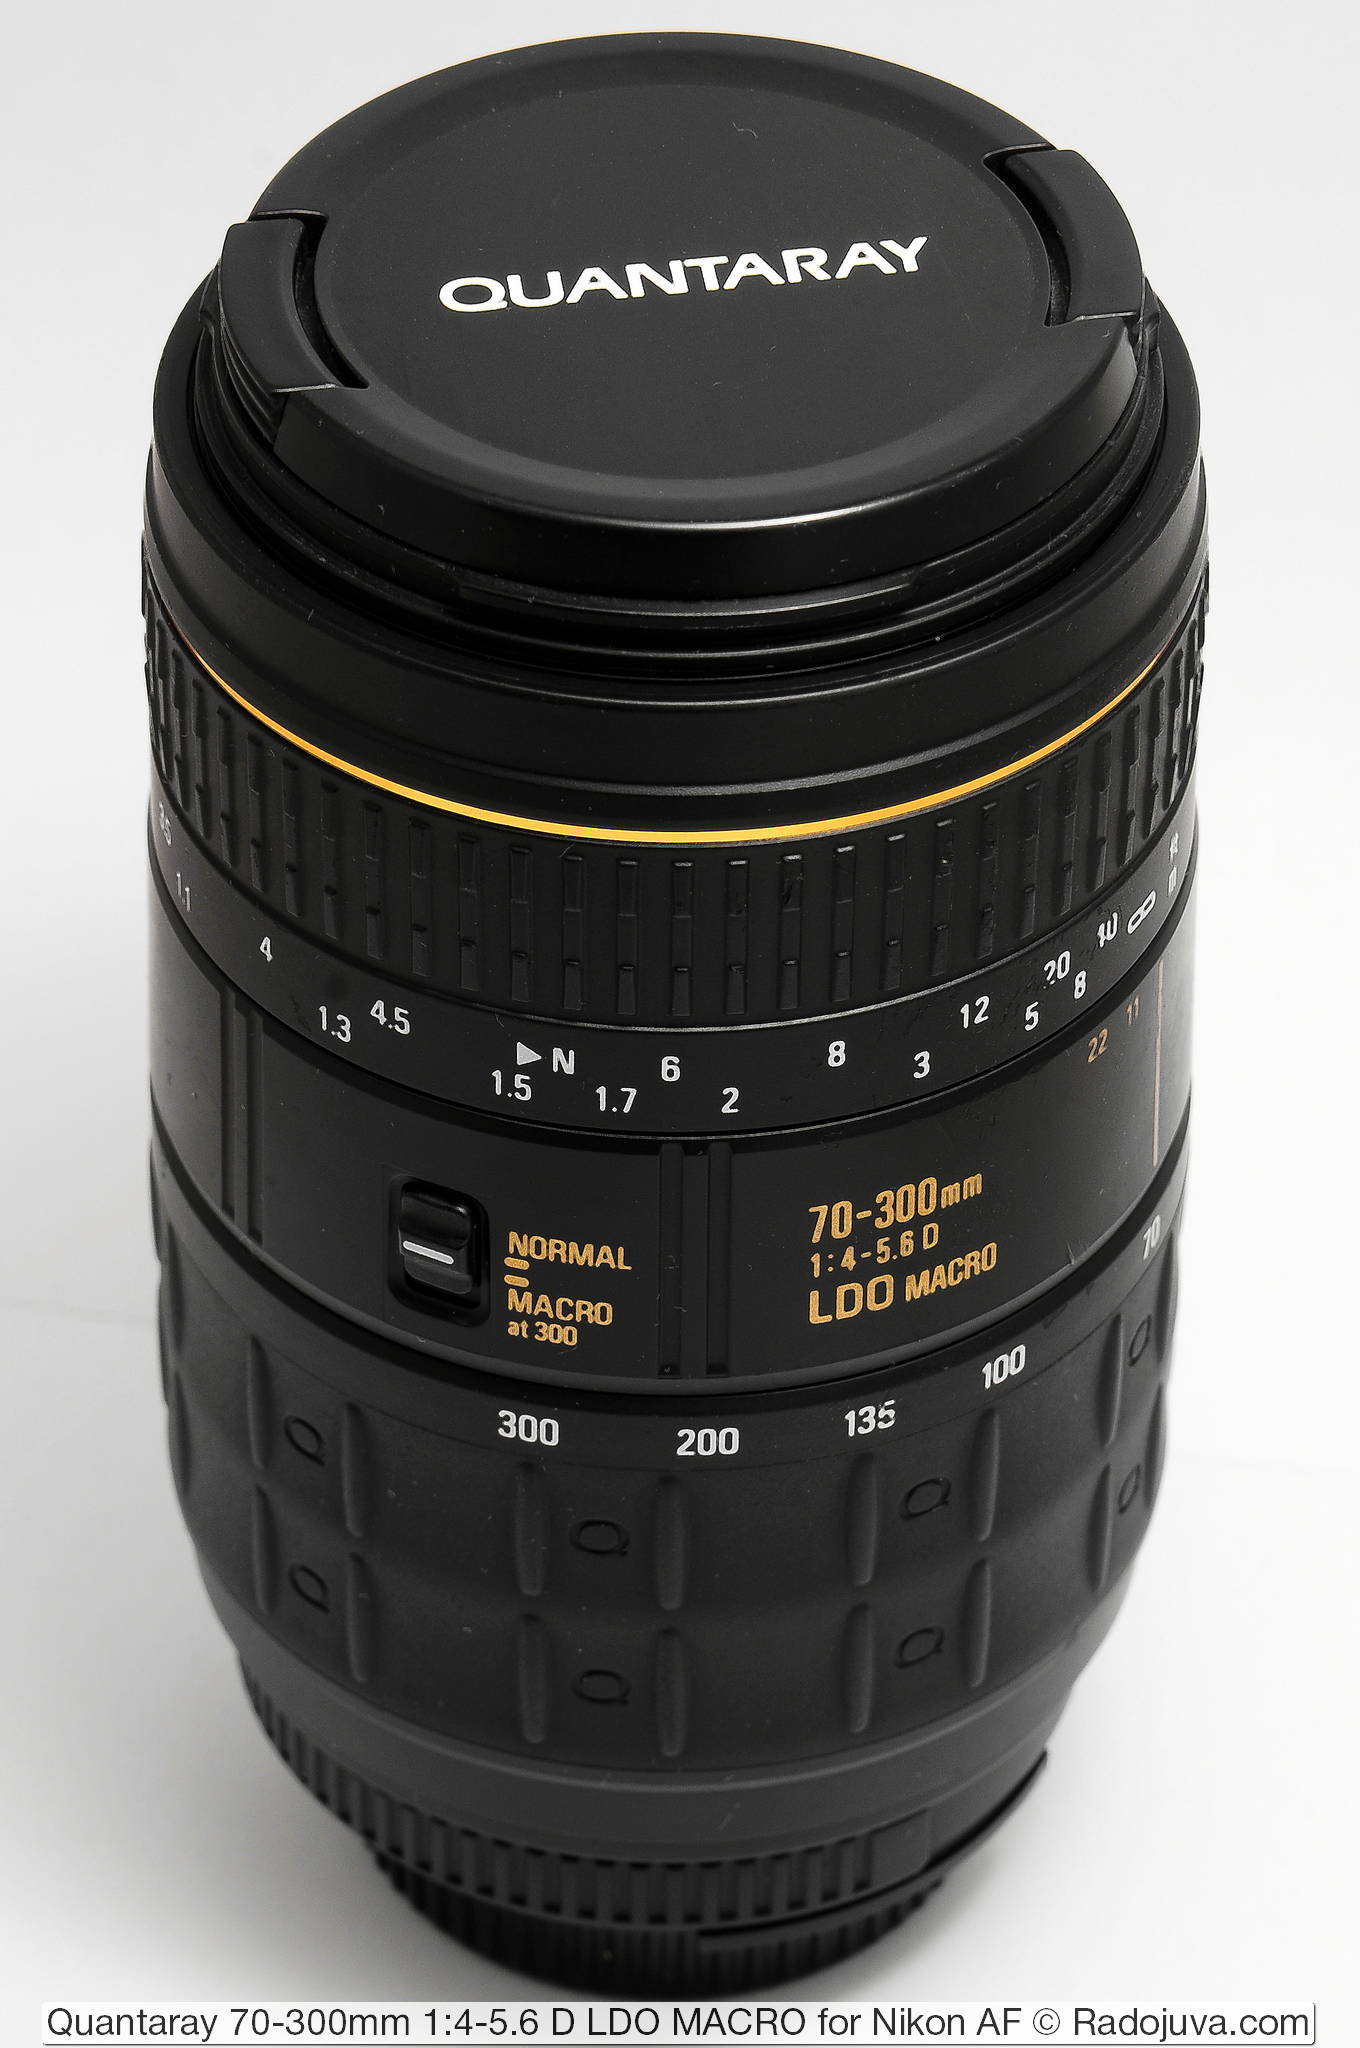 Quantaray 70-300mm 1:4-5.6 D LDO MACRO for Nikon AF